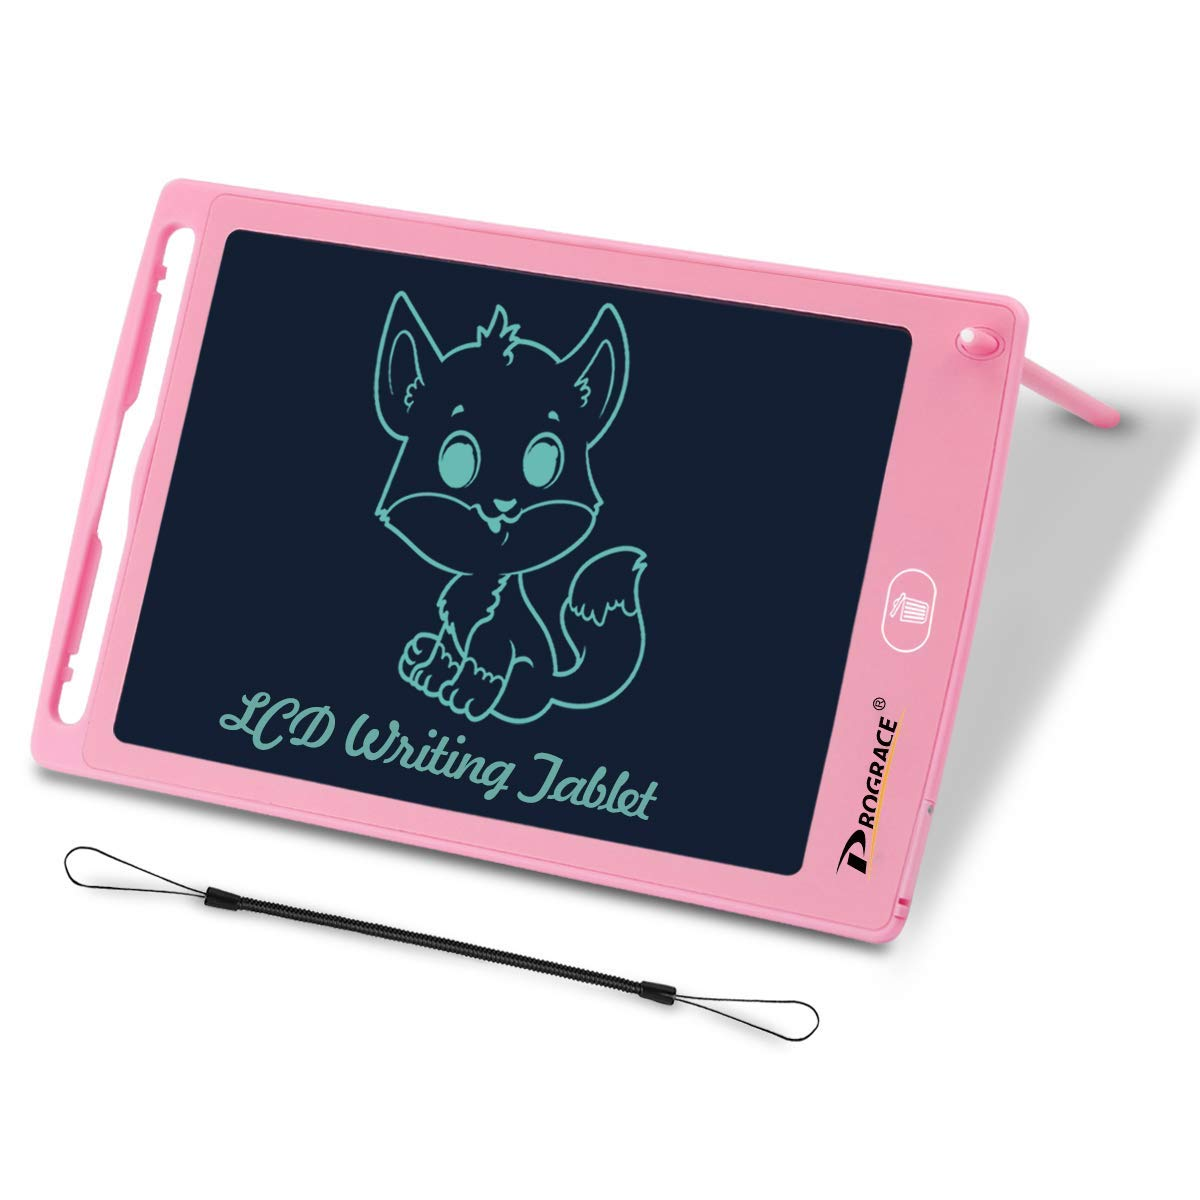 PROGRACE LCD Writing Tablet for Kids Learning Writing Board Magnetic Erase LCD Writing Pad Smart Doodle Drawing Board for Home School Office Portable Electronics Digital Handwriting Pads 8.5 Inch-pink